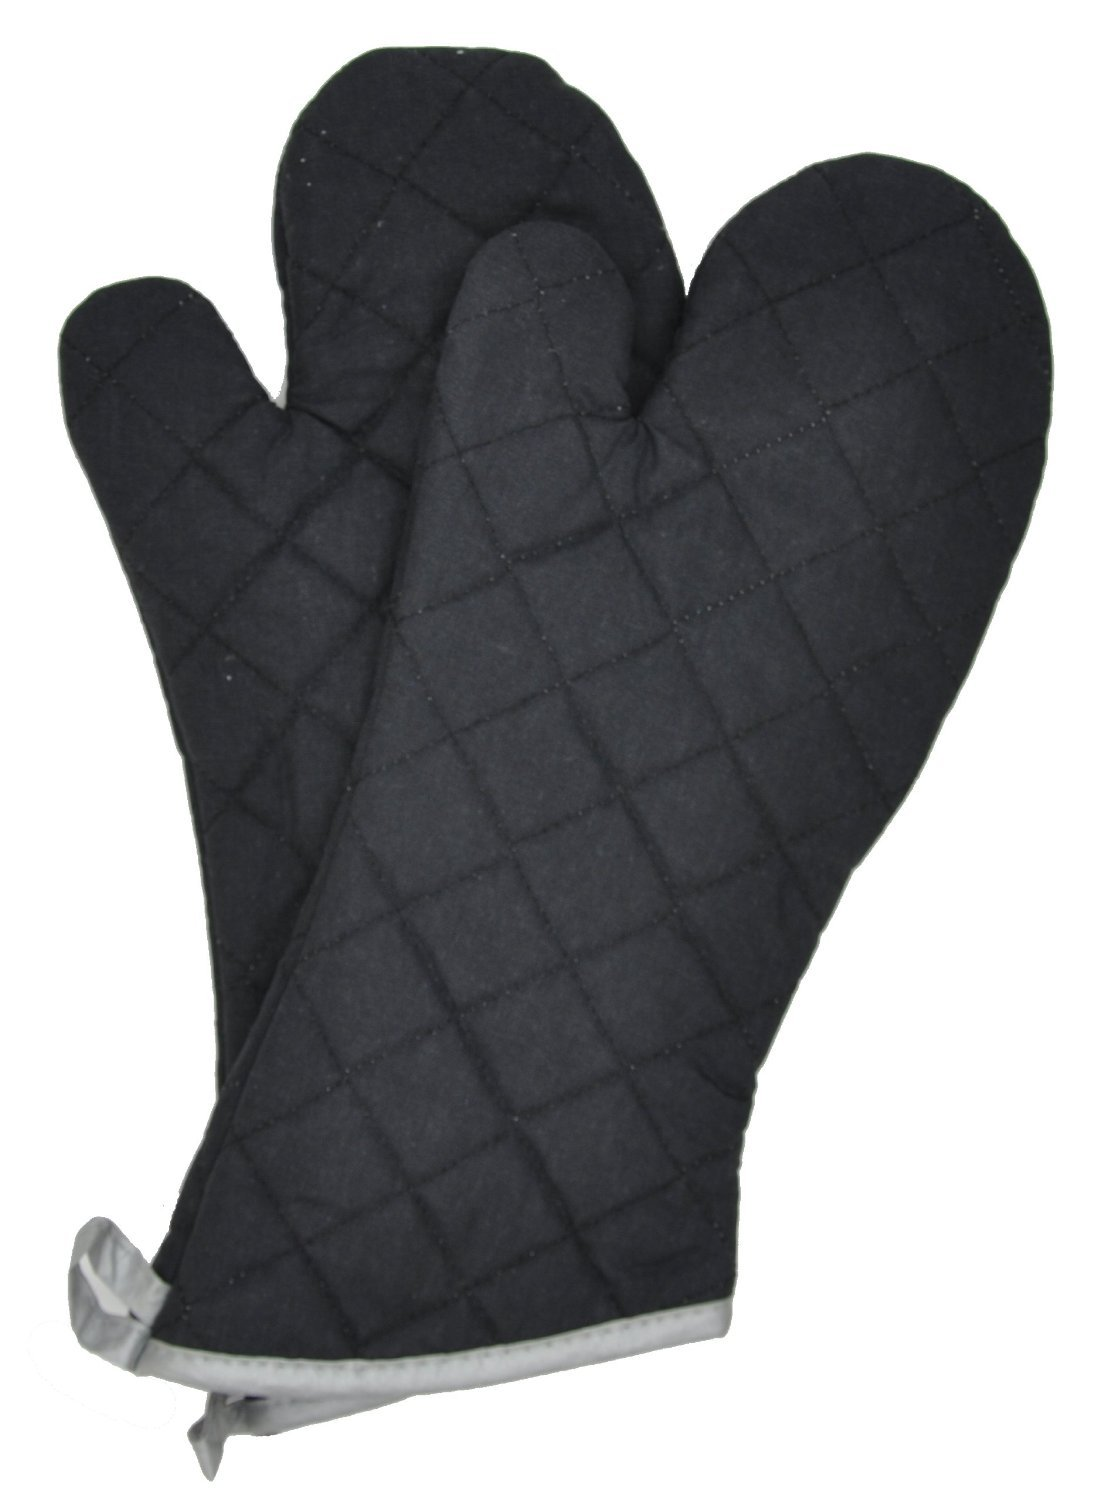 Nouvelle legende flame retardant quilted oven mitts